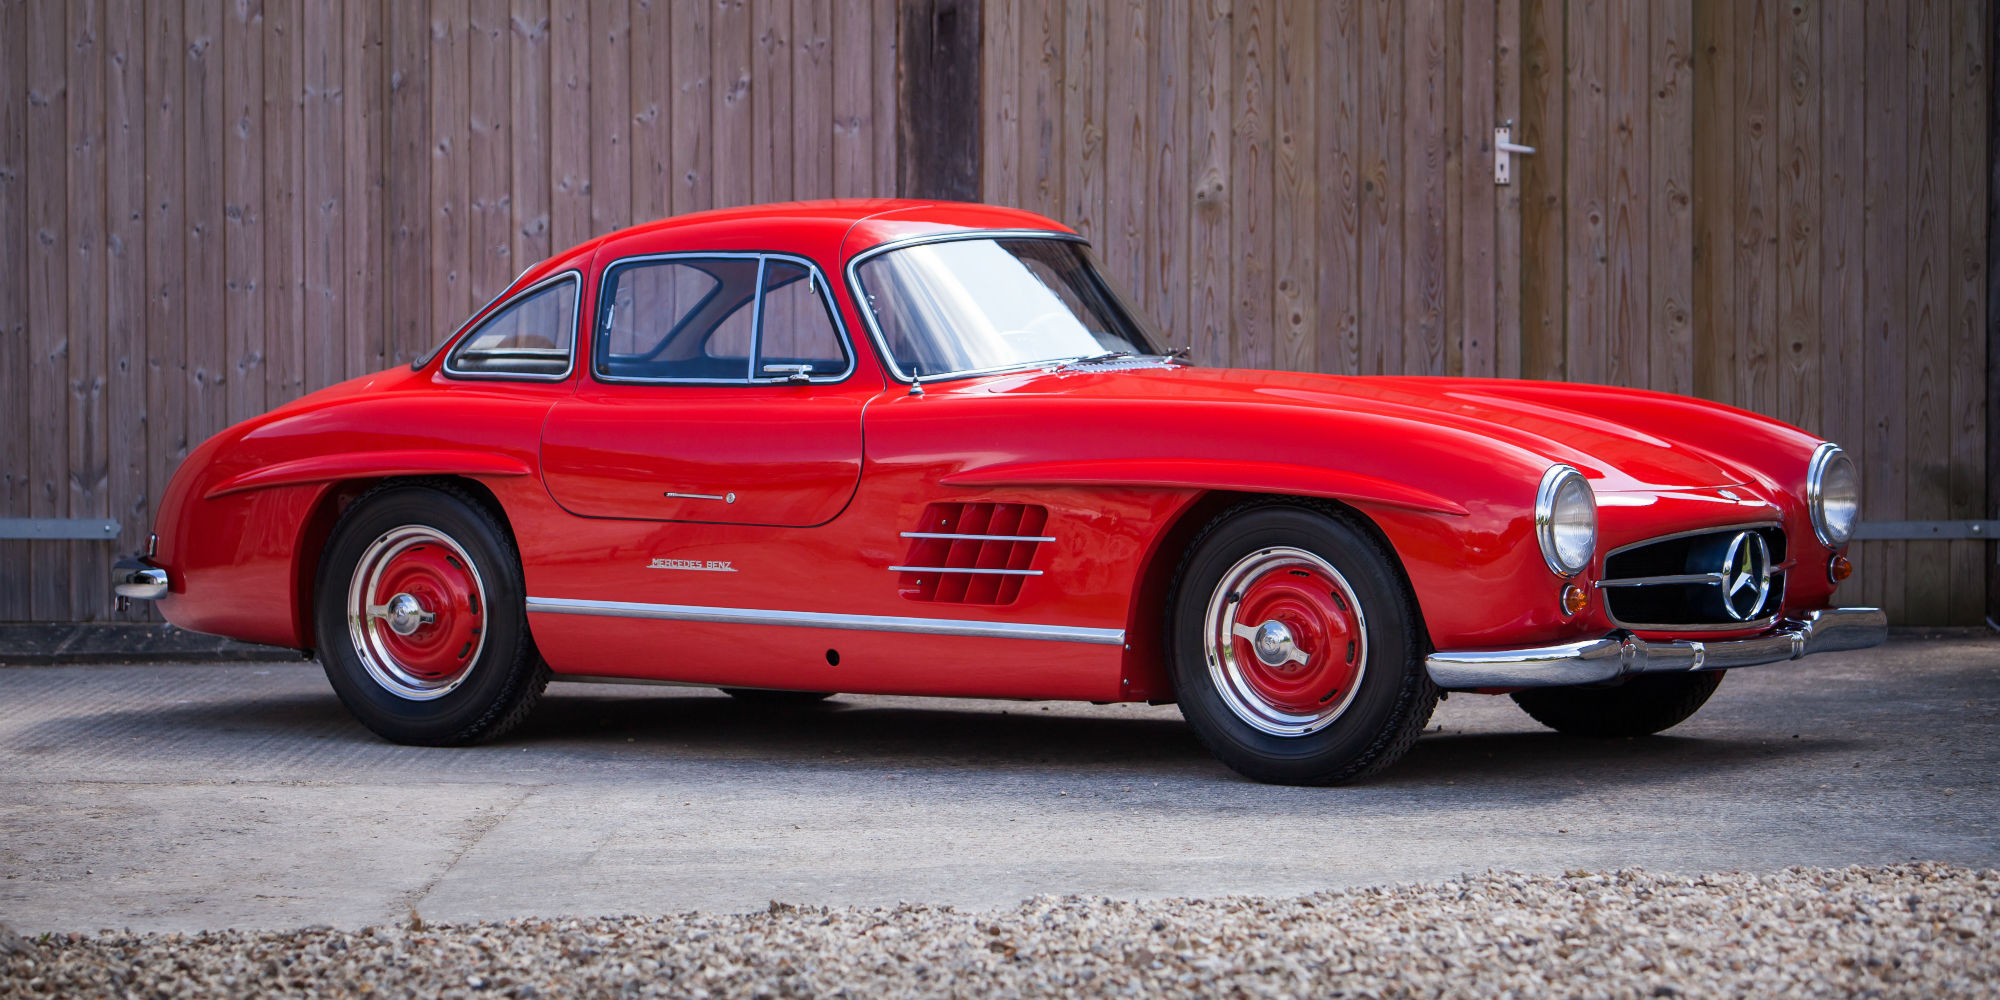 The London Motor Show 1955 Mercedes-Benz 300 SL Coupé 'Gullwing'